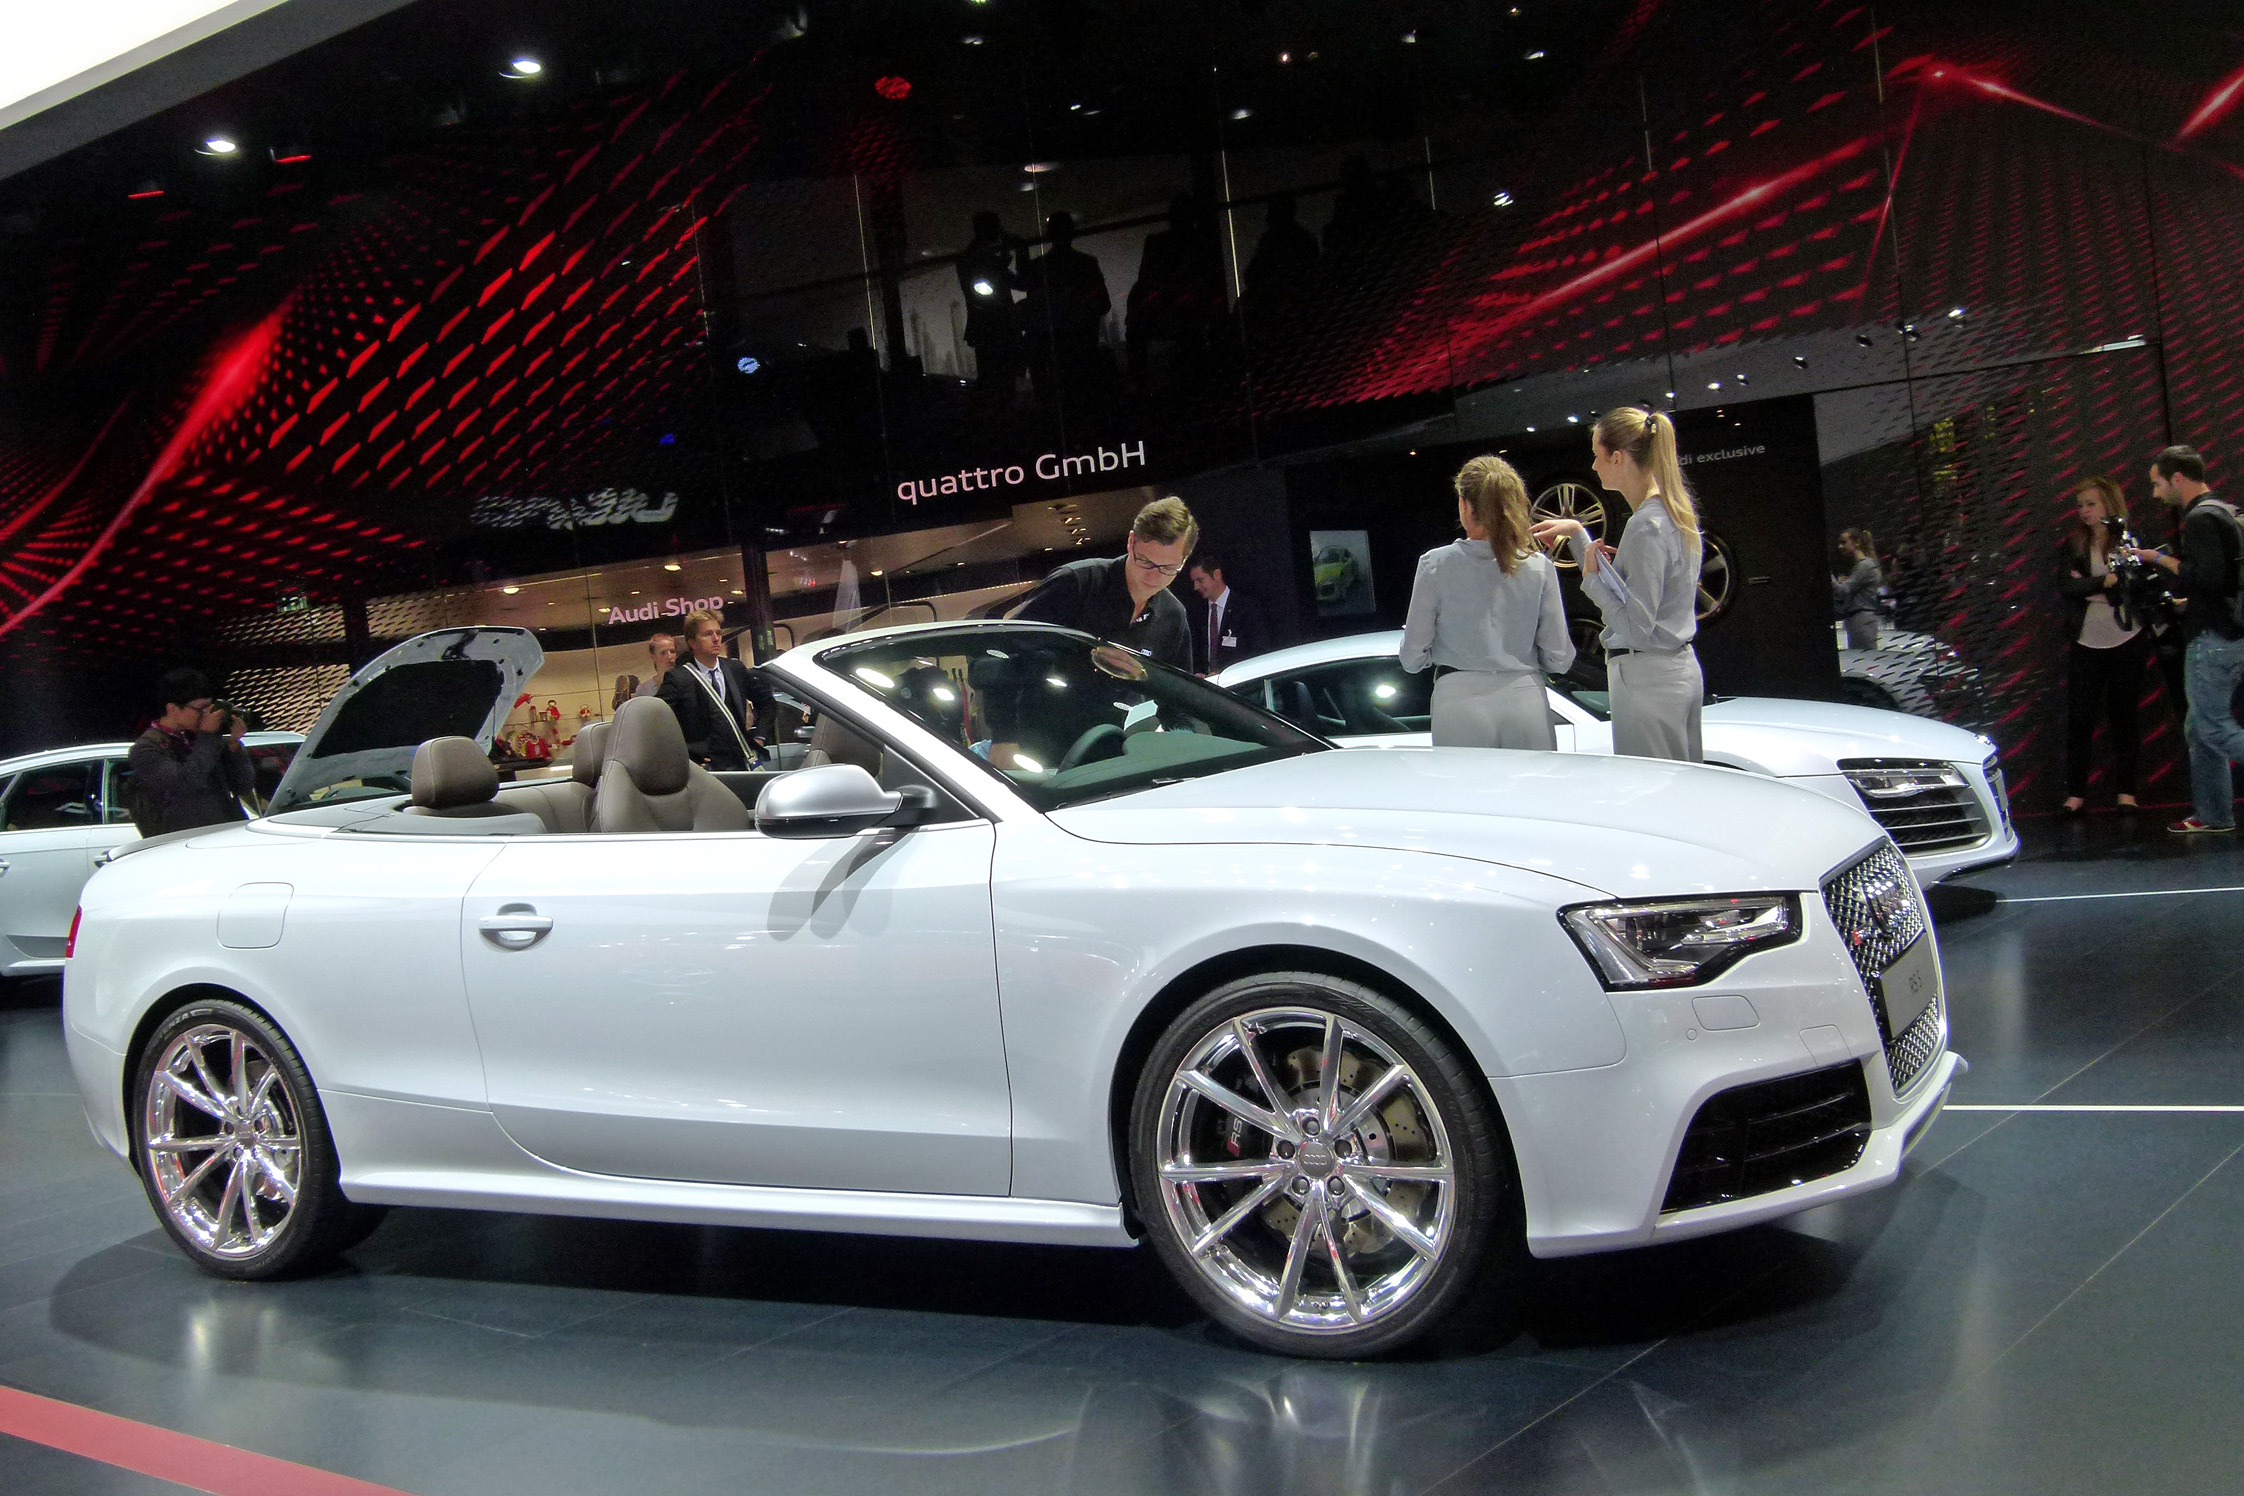 audi rs5 cabriolet mondial de l 39 automobile 2012. Black Bedroom Furniture Sets. Home Design Ideas